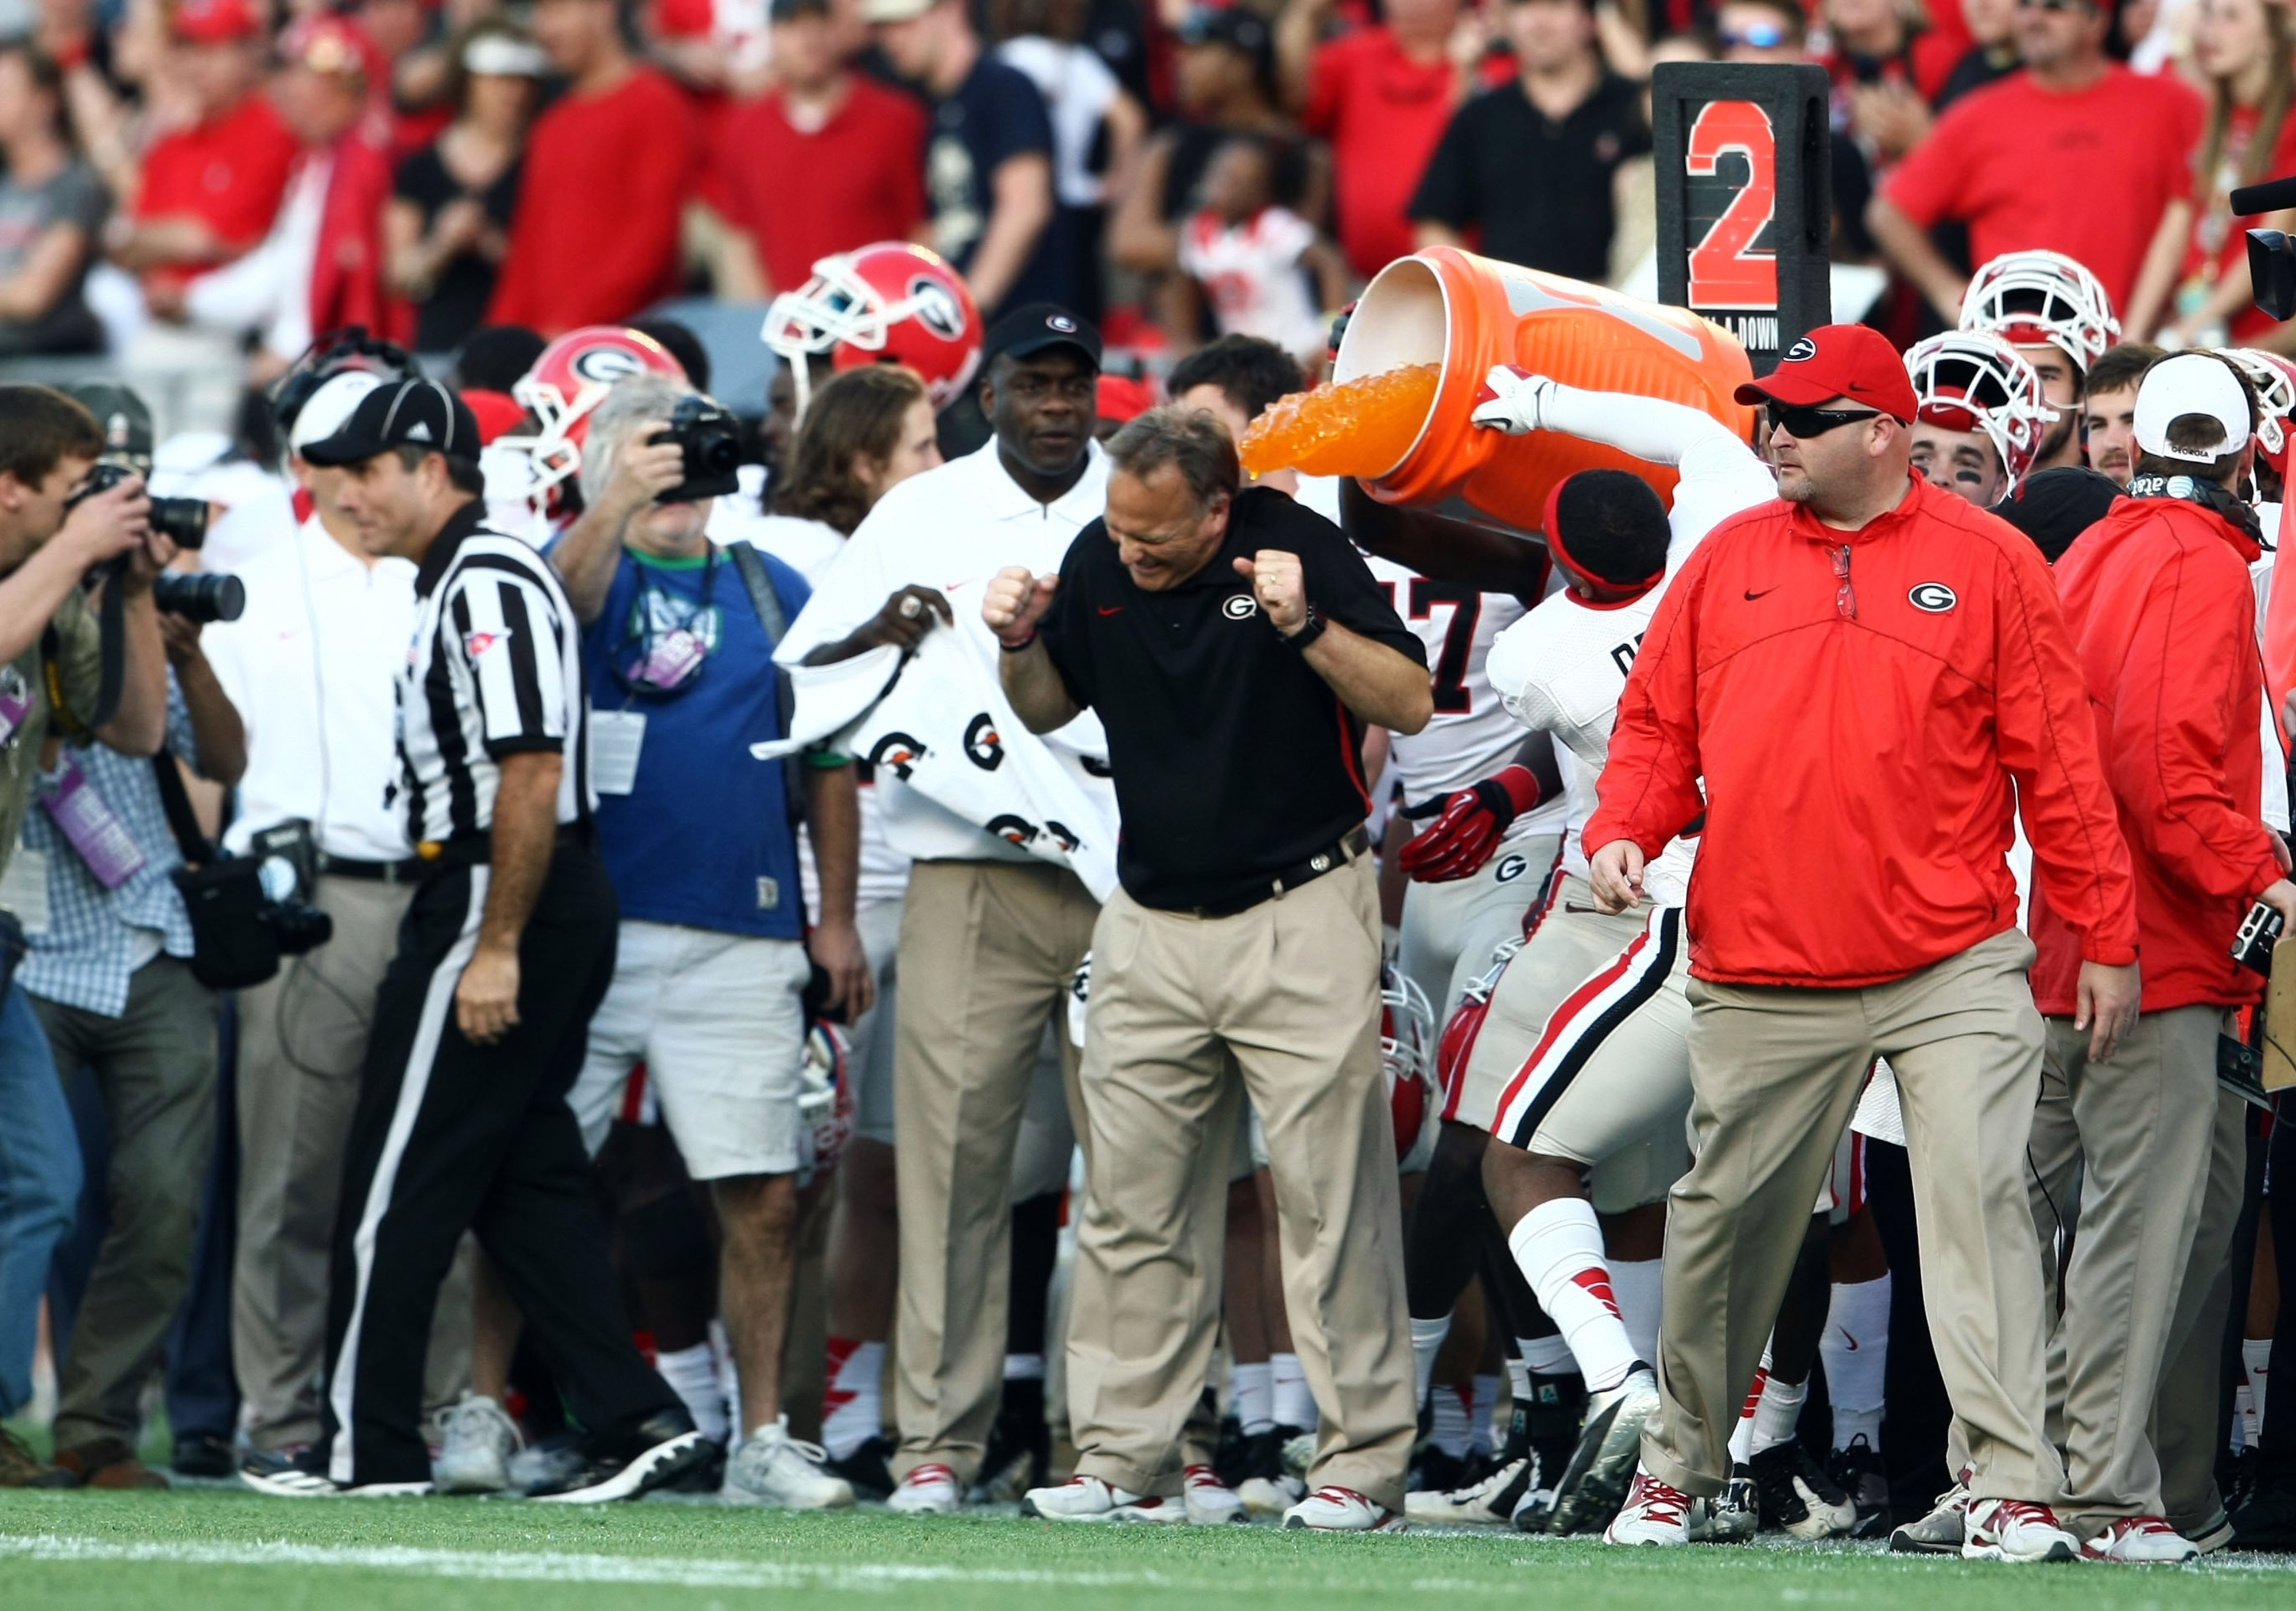 Mark Richt is doused with Powerade after a New Year's Day bowl victory to cap off the third twelve-win season in Georgia history. Is he on the hot seat?